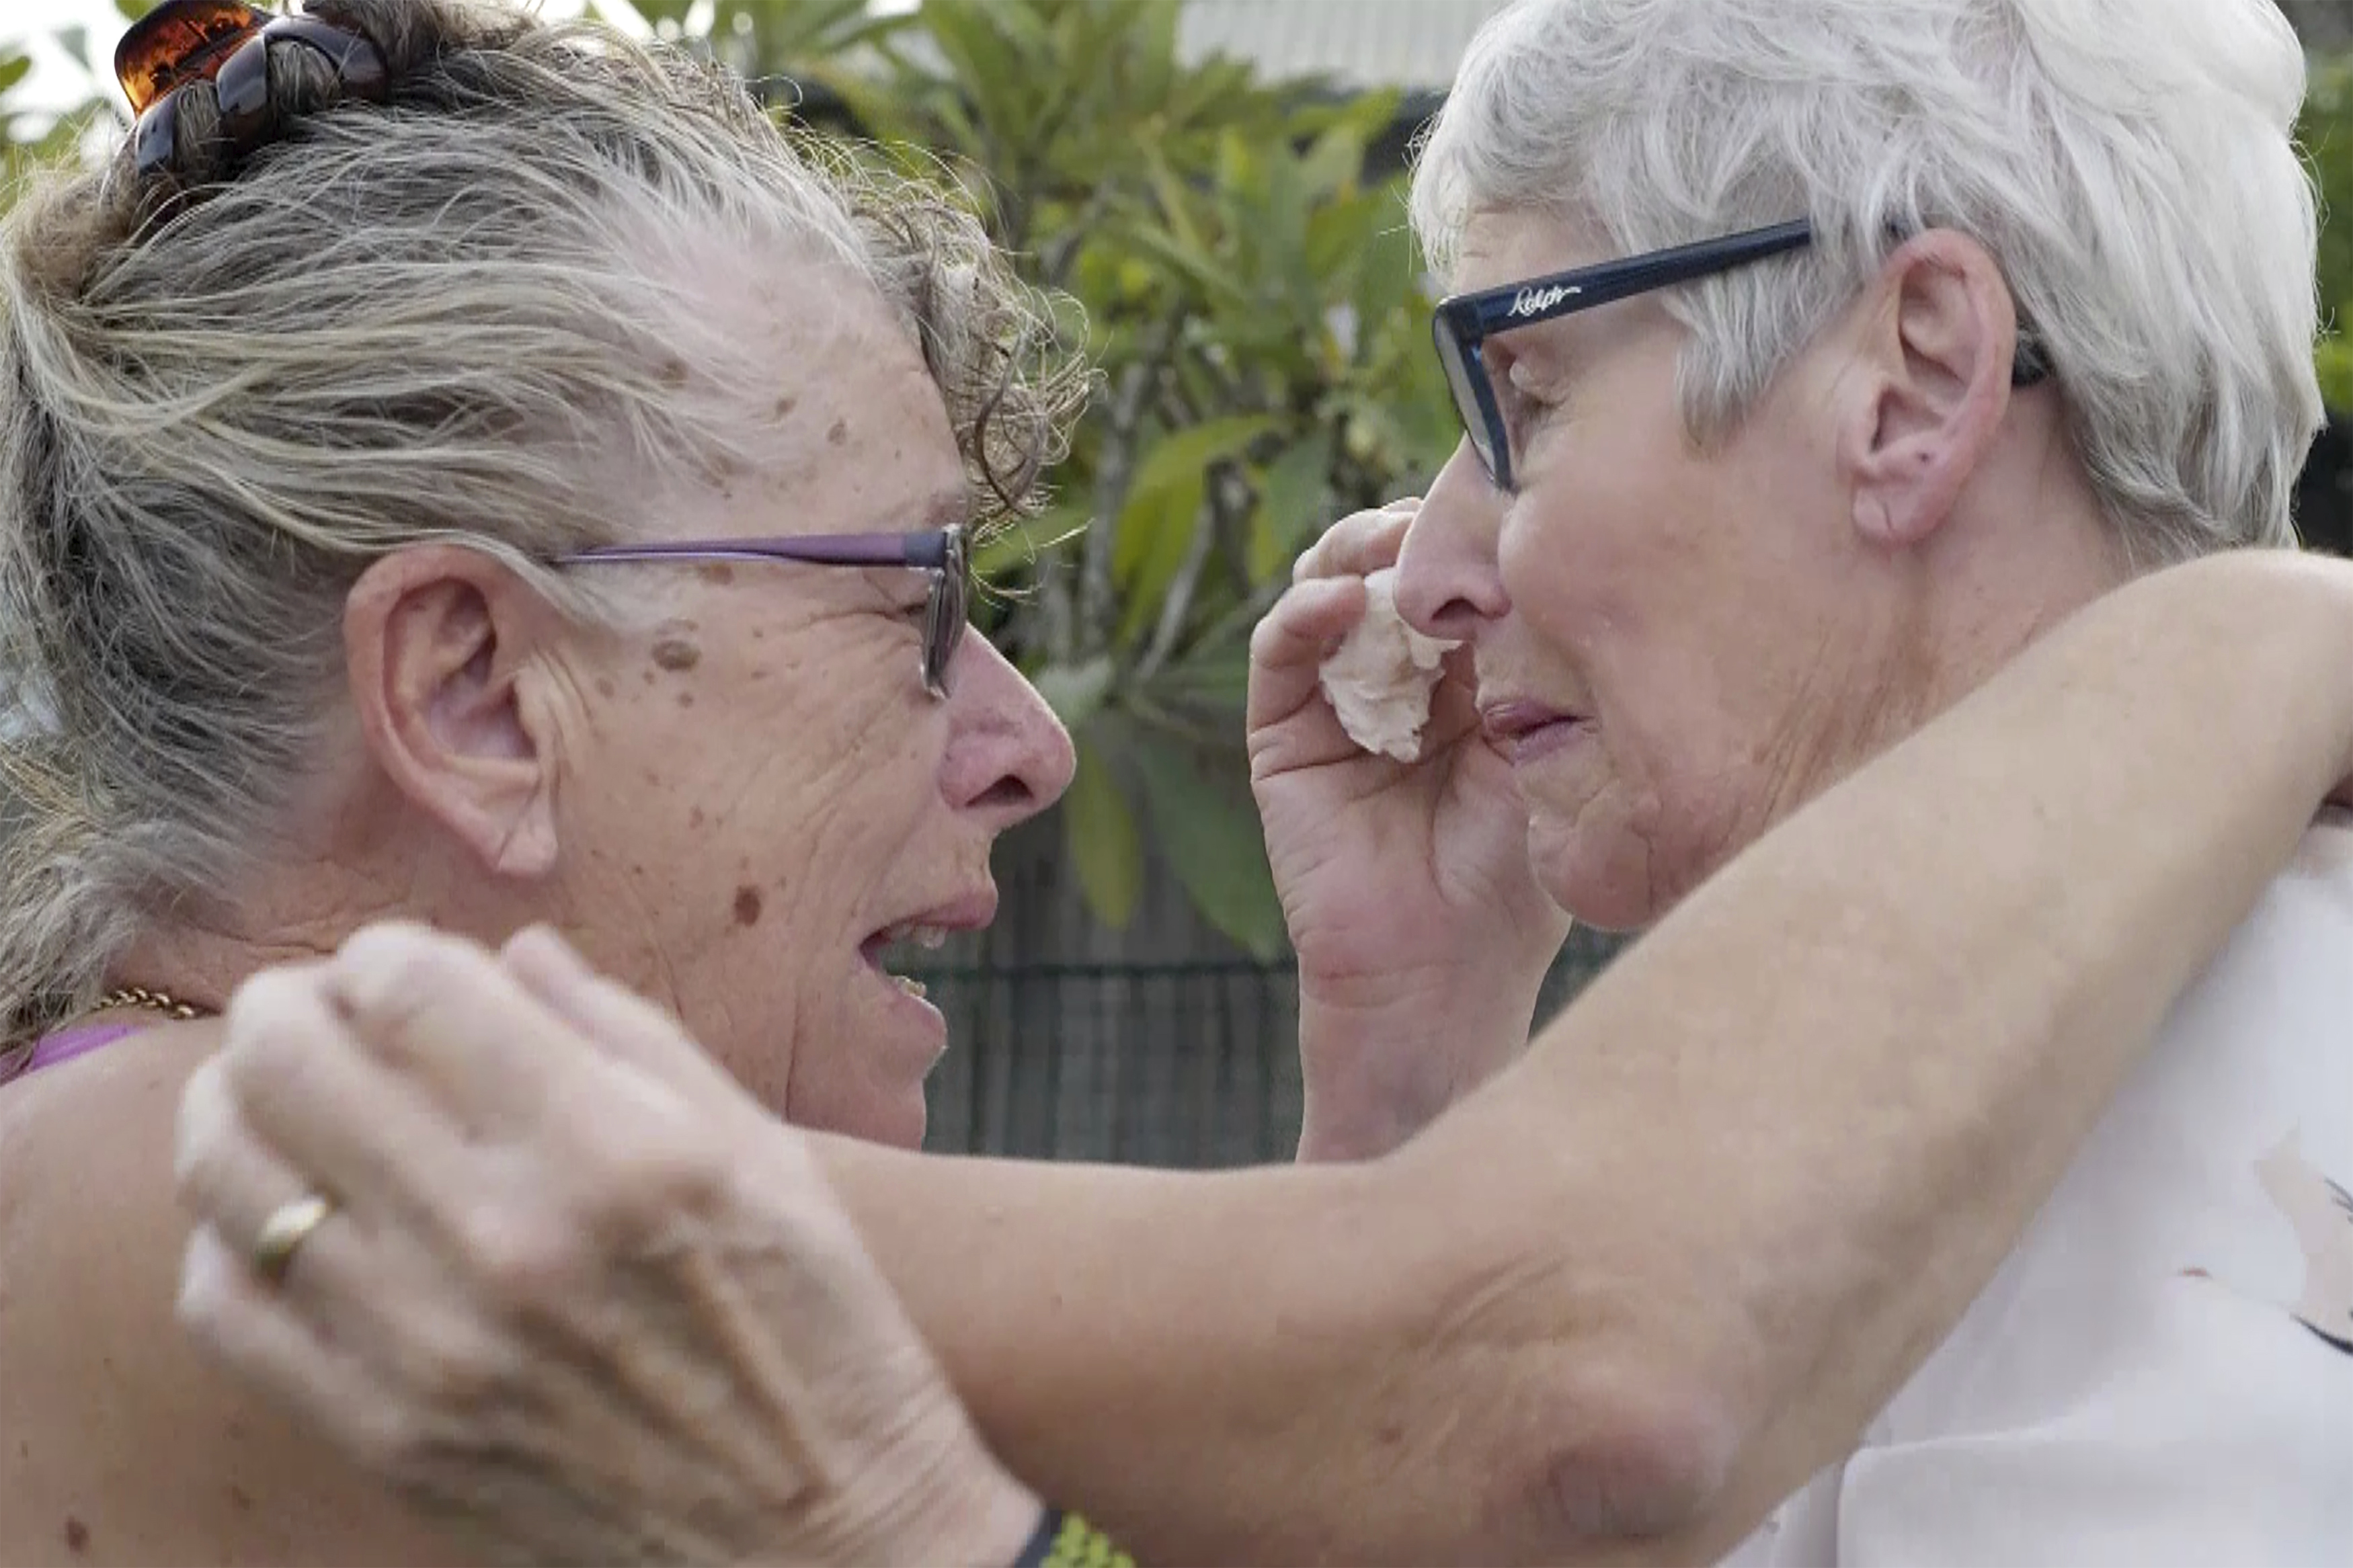 Christine Archer, right, and her sister Gail Baker cry as they are reunited in Bowraville, Australia on May 20, 2020.